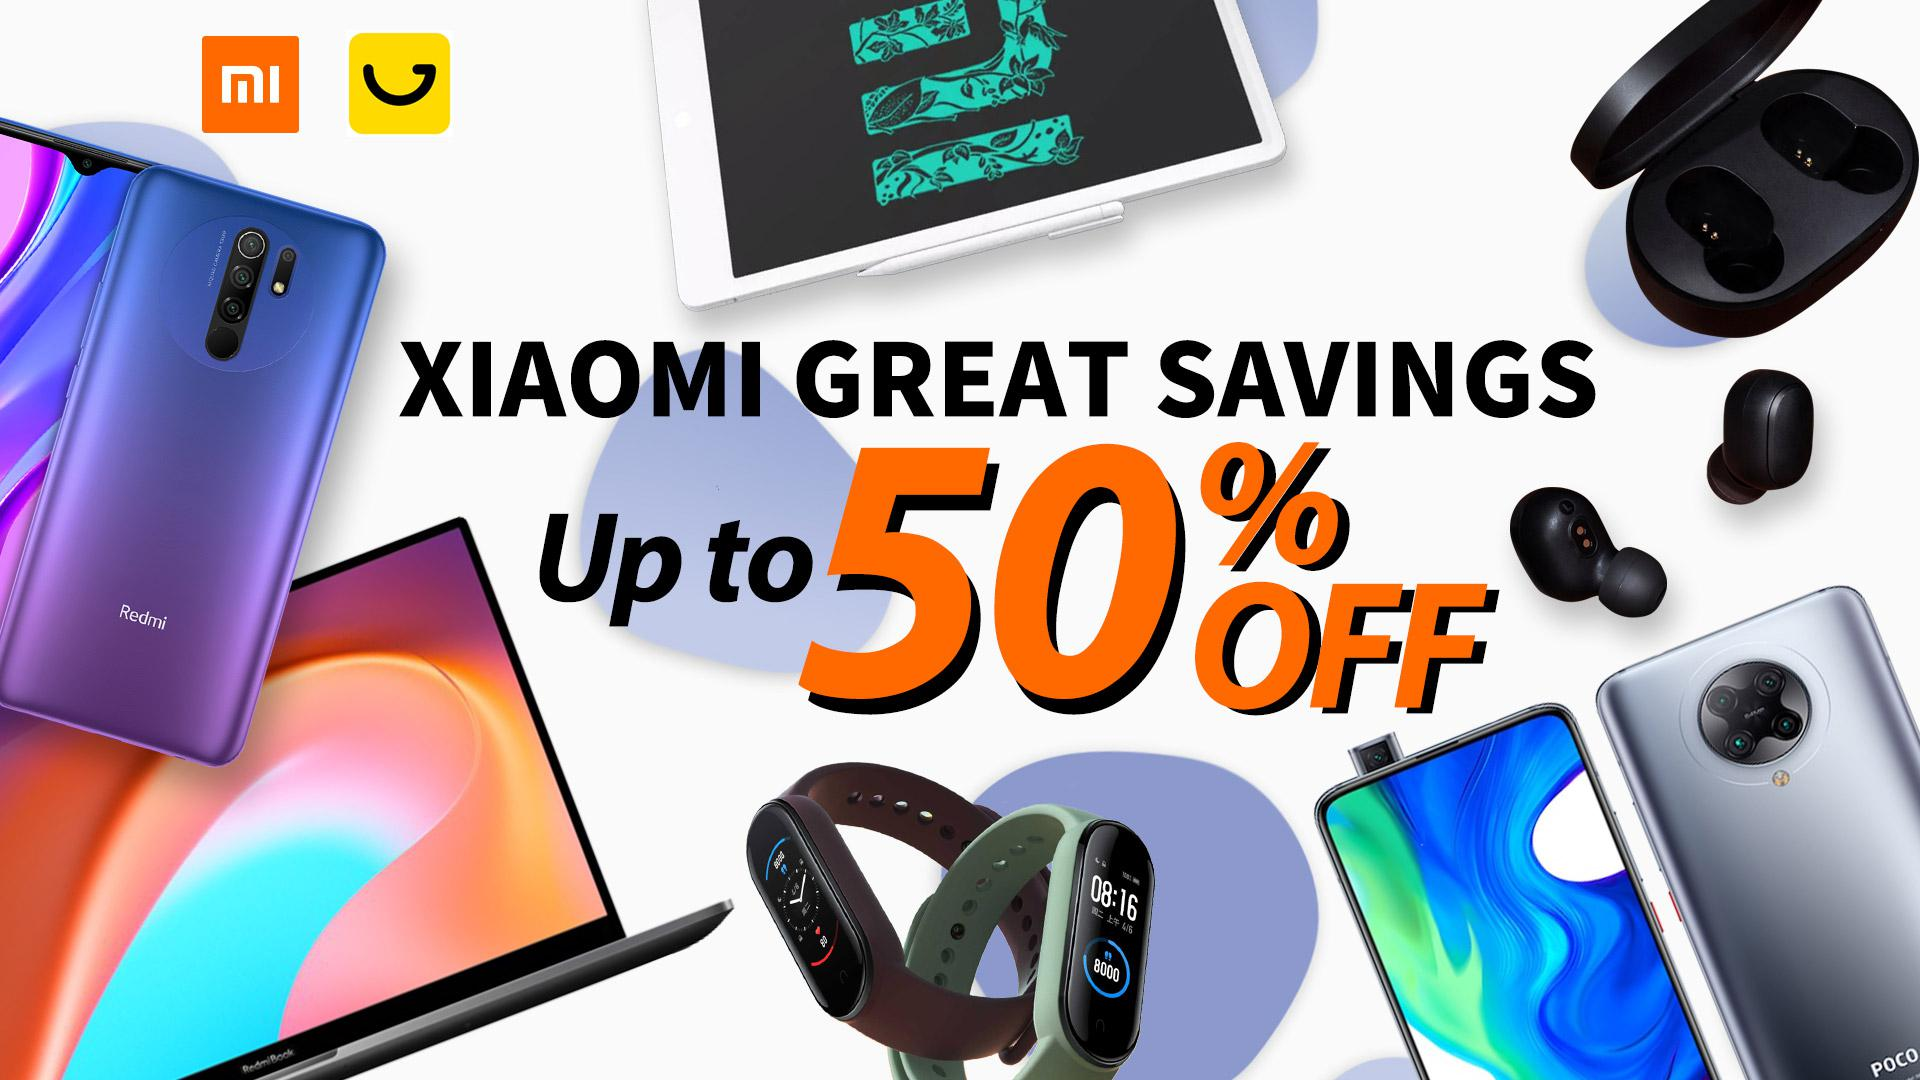 6Best Budget Xiaomi Deals For 2020 丨 UP TO 50% OFF!